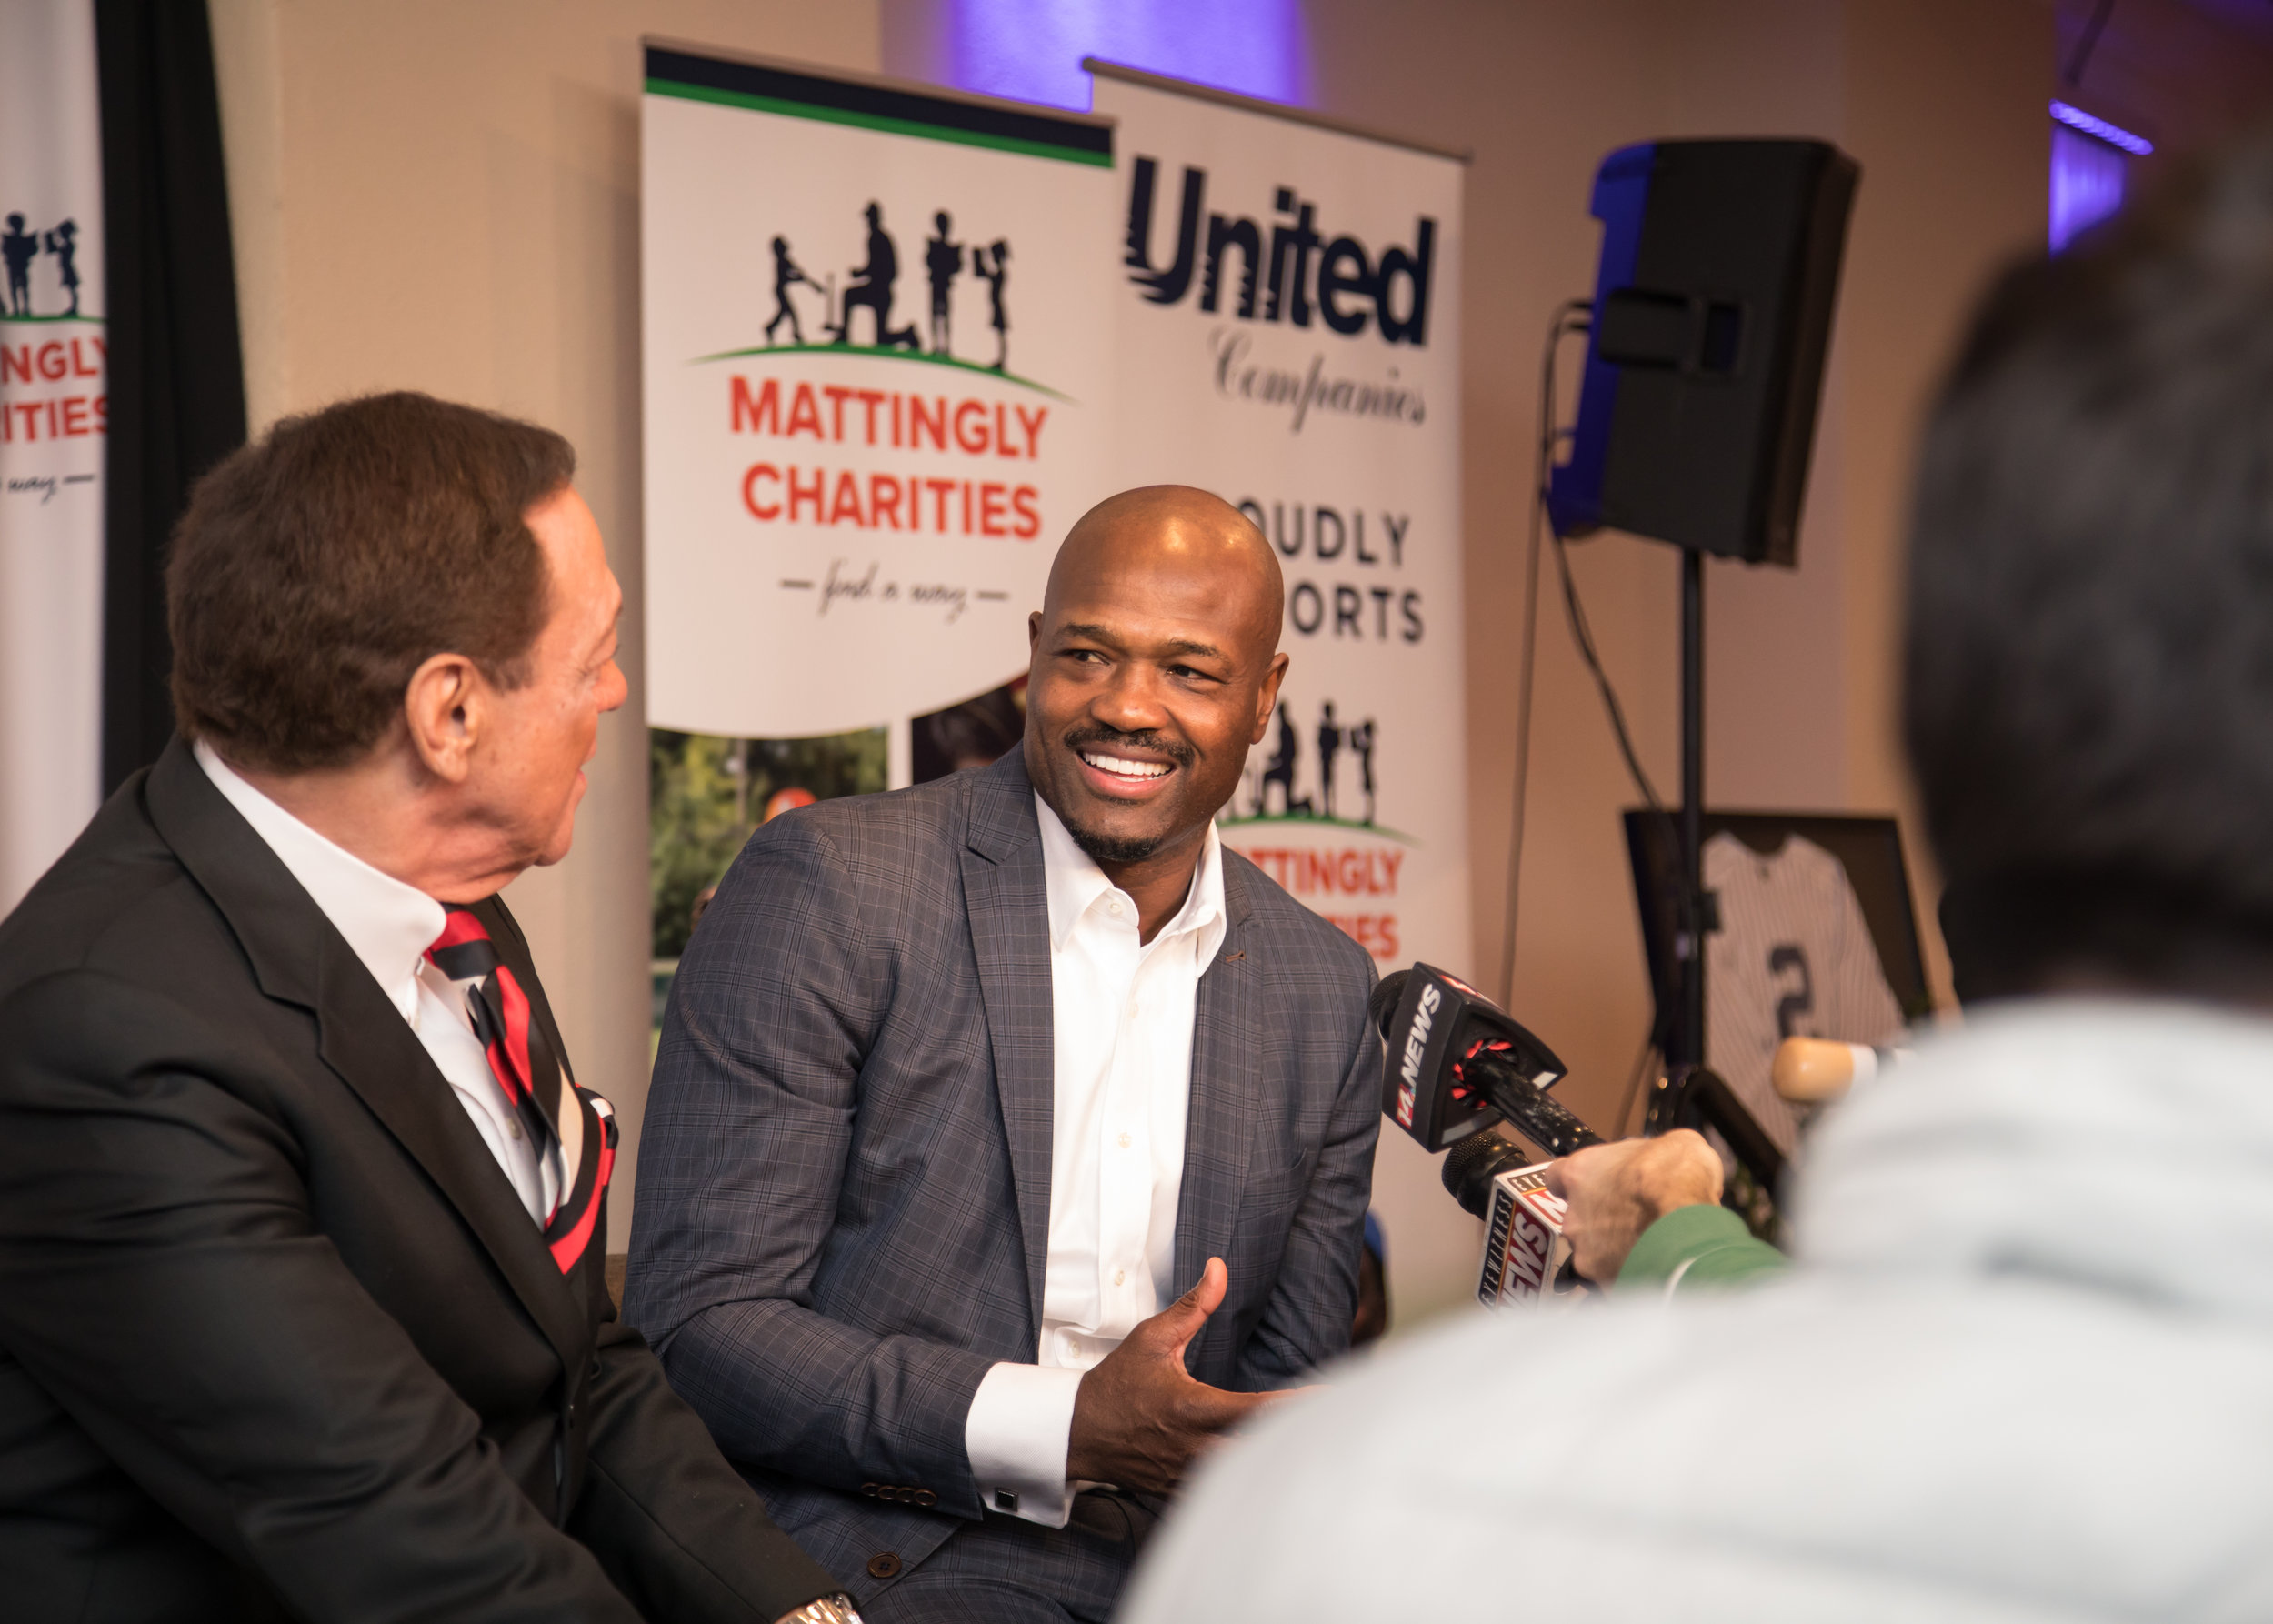 1-10-2019 Mattingly Charity Event-88.jpg